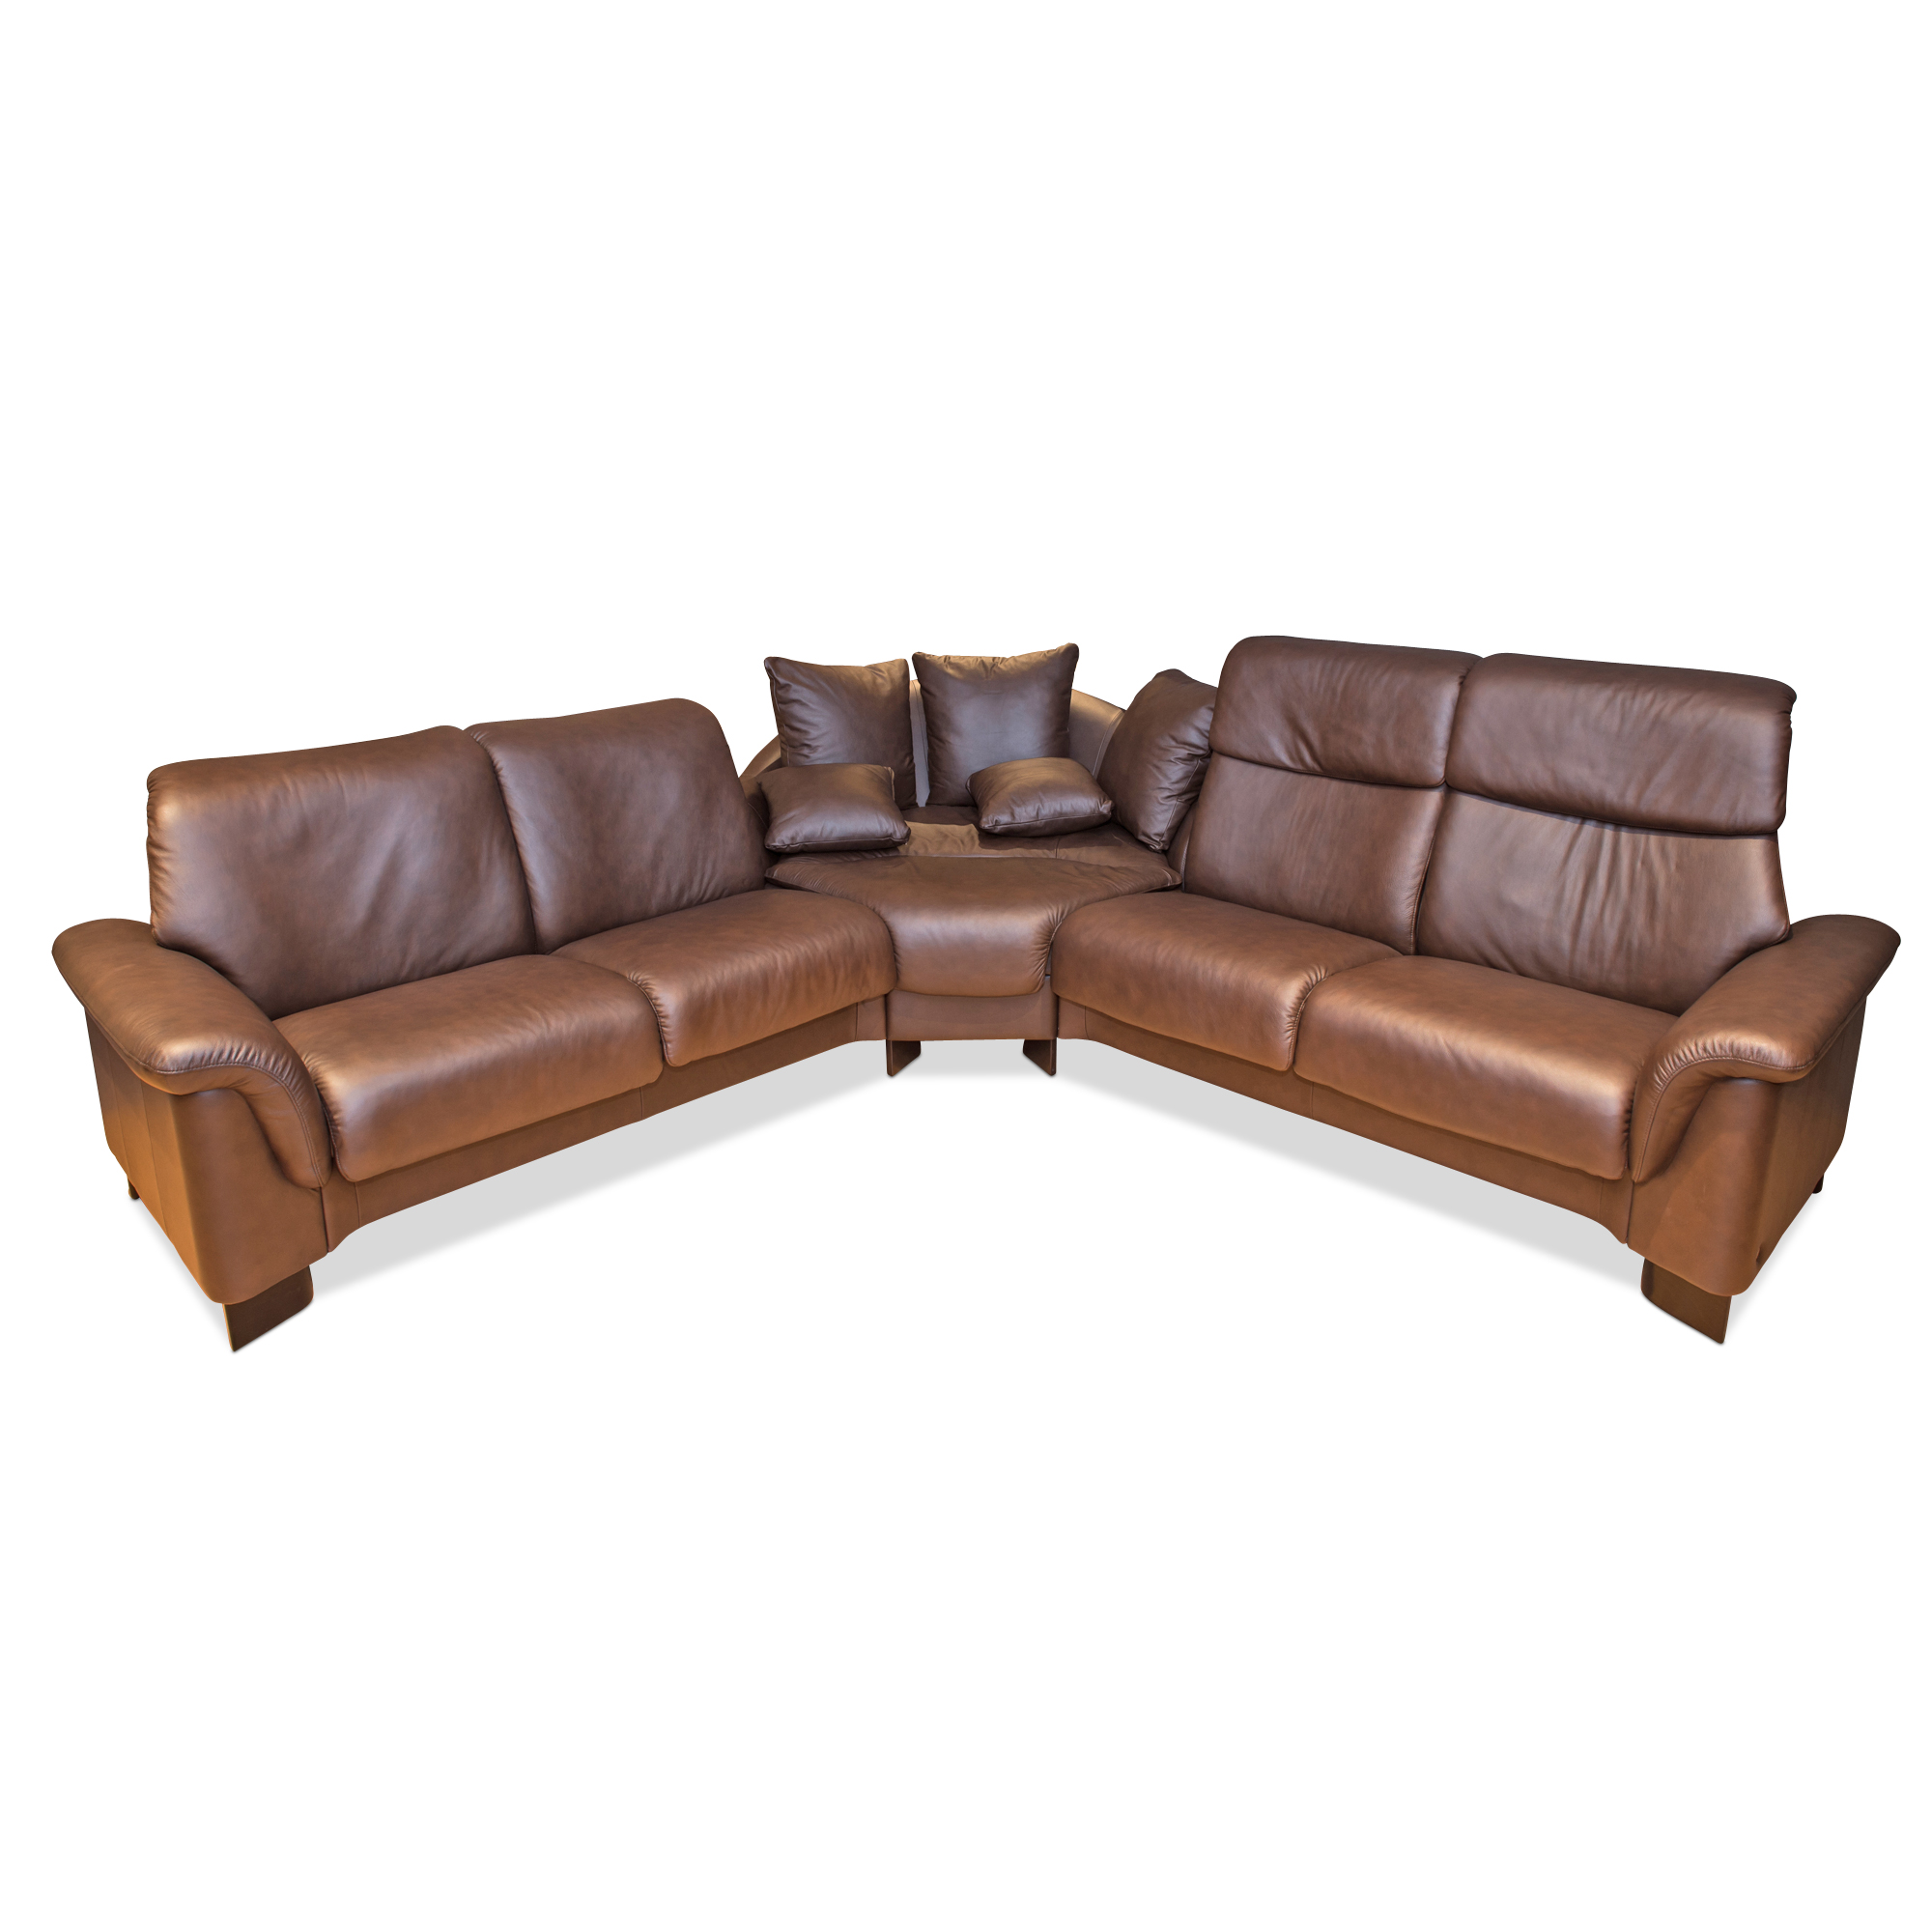 stressless designer ecksofa paradise mit verstellbarer r ckenlehne leder ebay. Black Bedroom Furniture Sets. Home Design Ideas